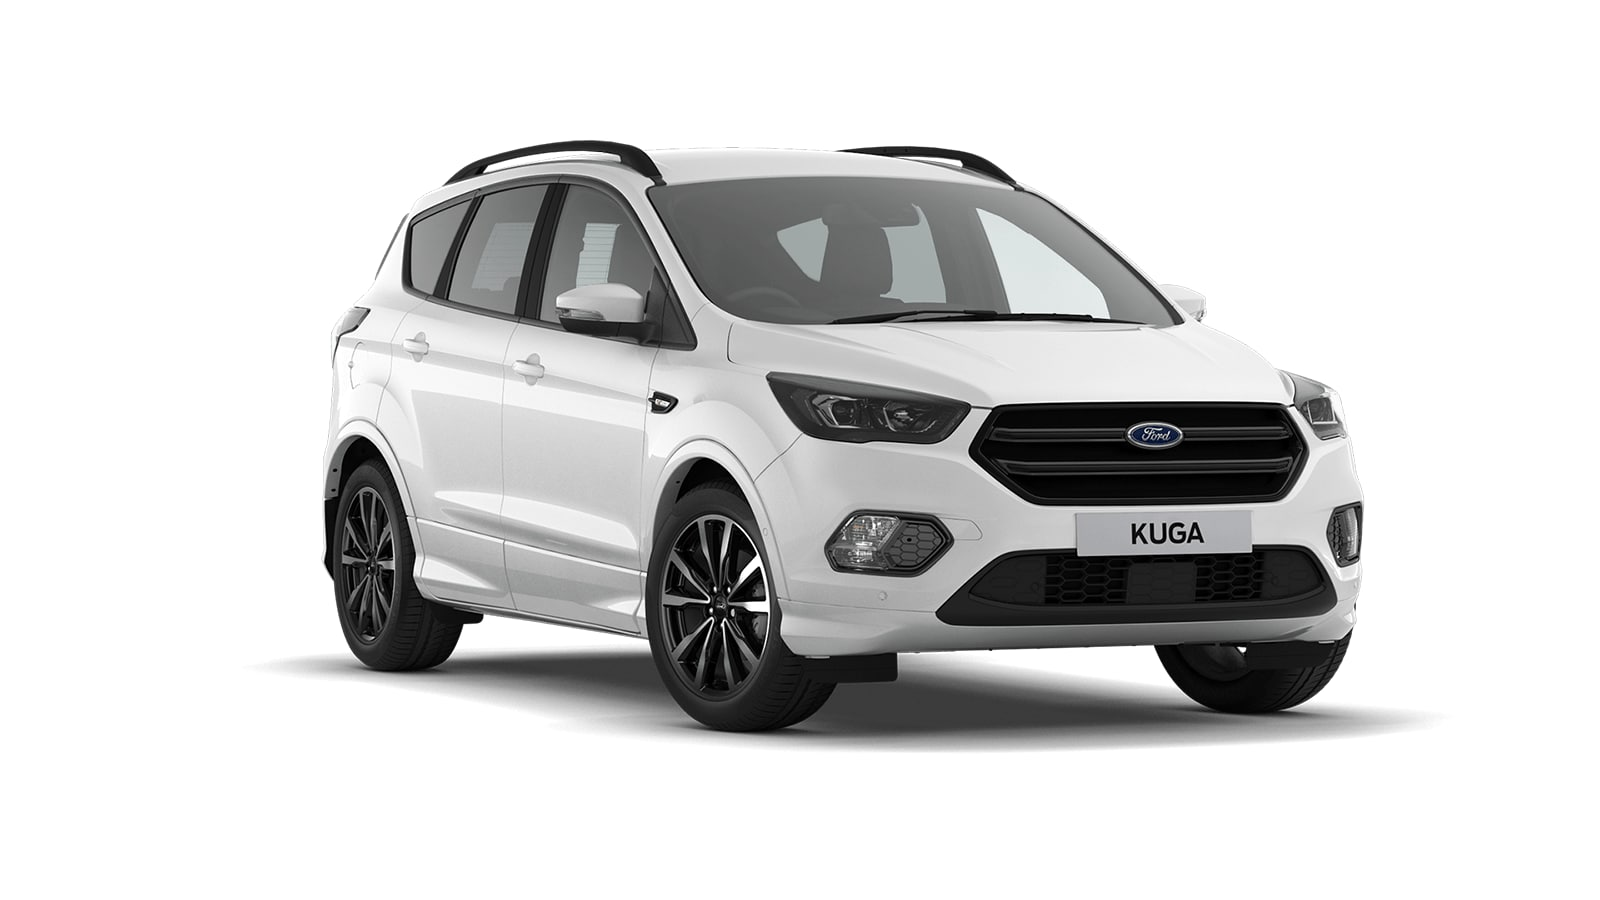 https://www.dealerinternet.co.uk/images/KUGA/2019.75/5%20Door/ST-Line/FROZEN-WHITE.png